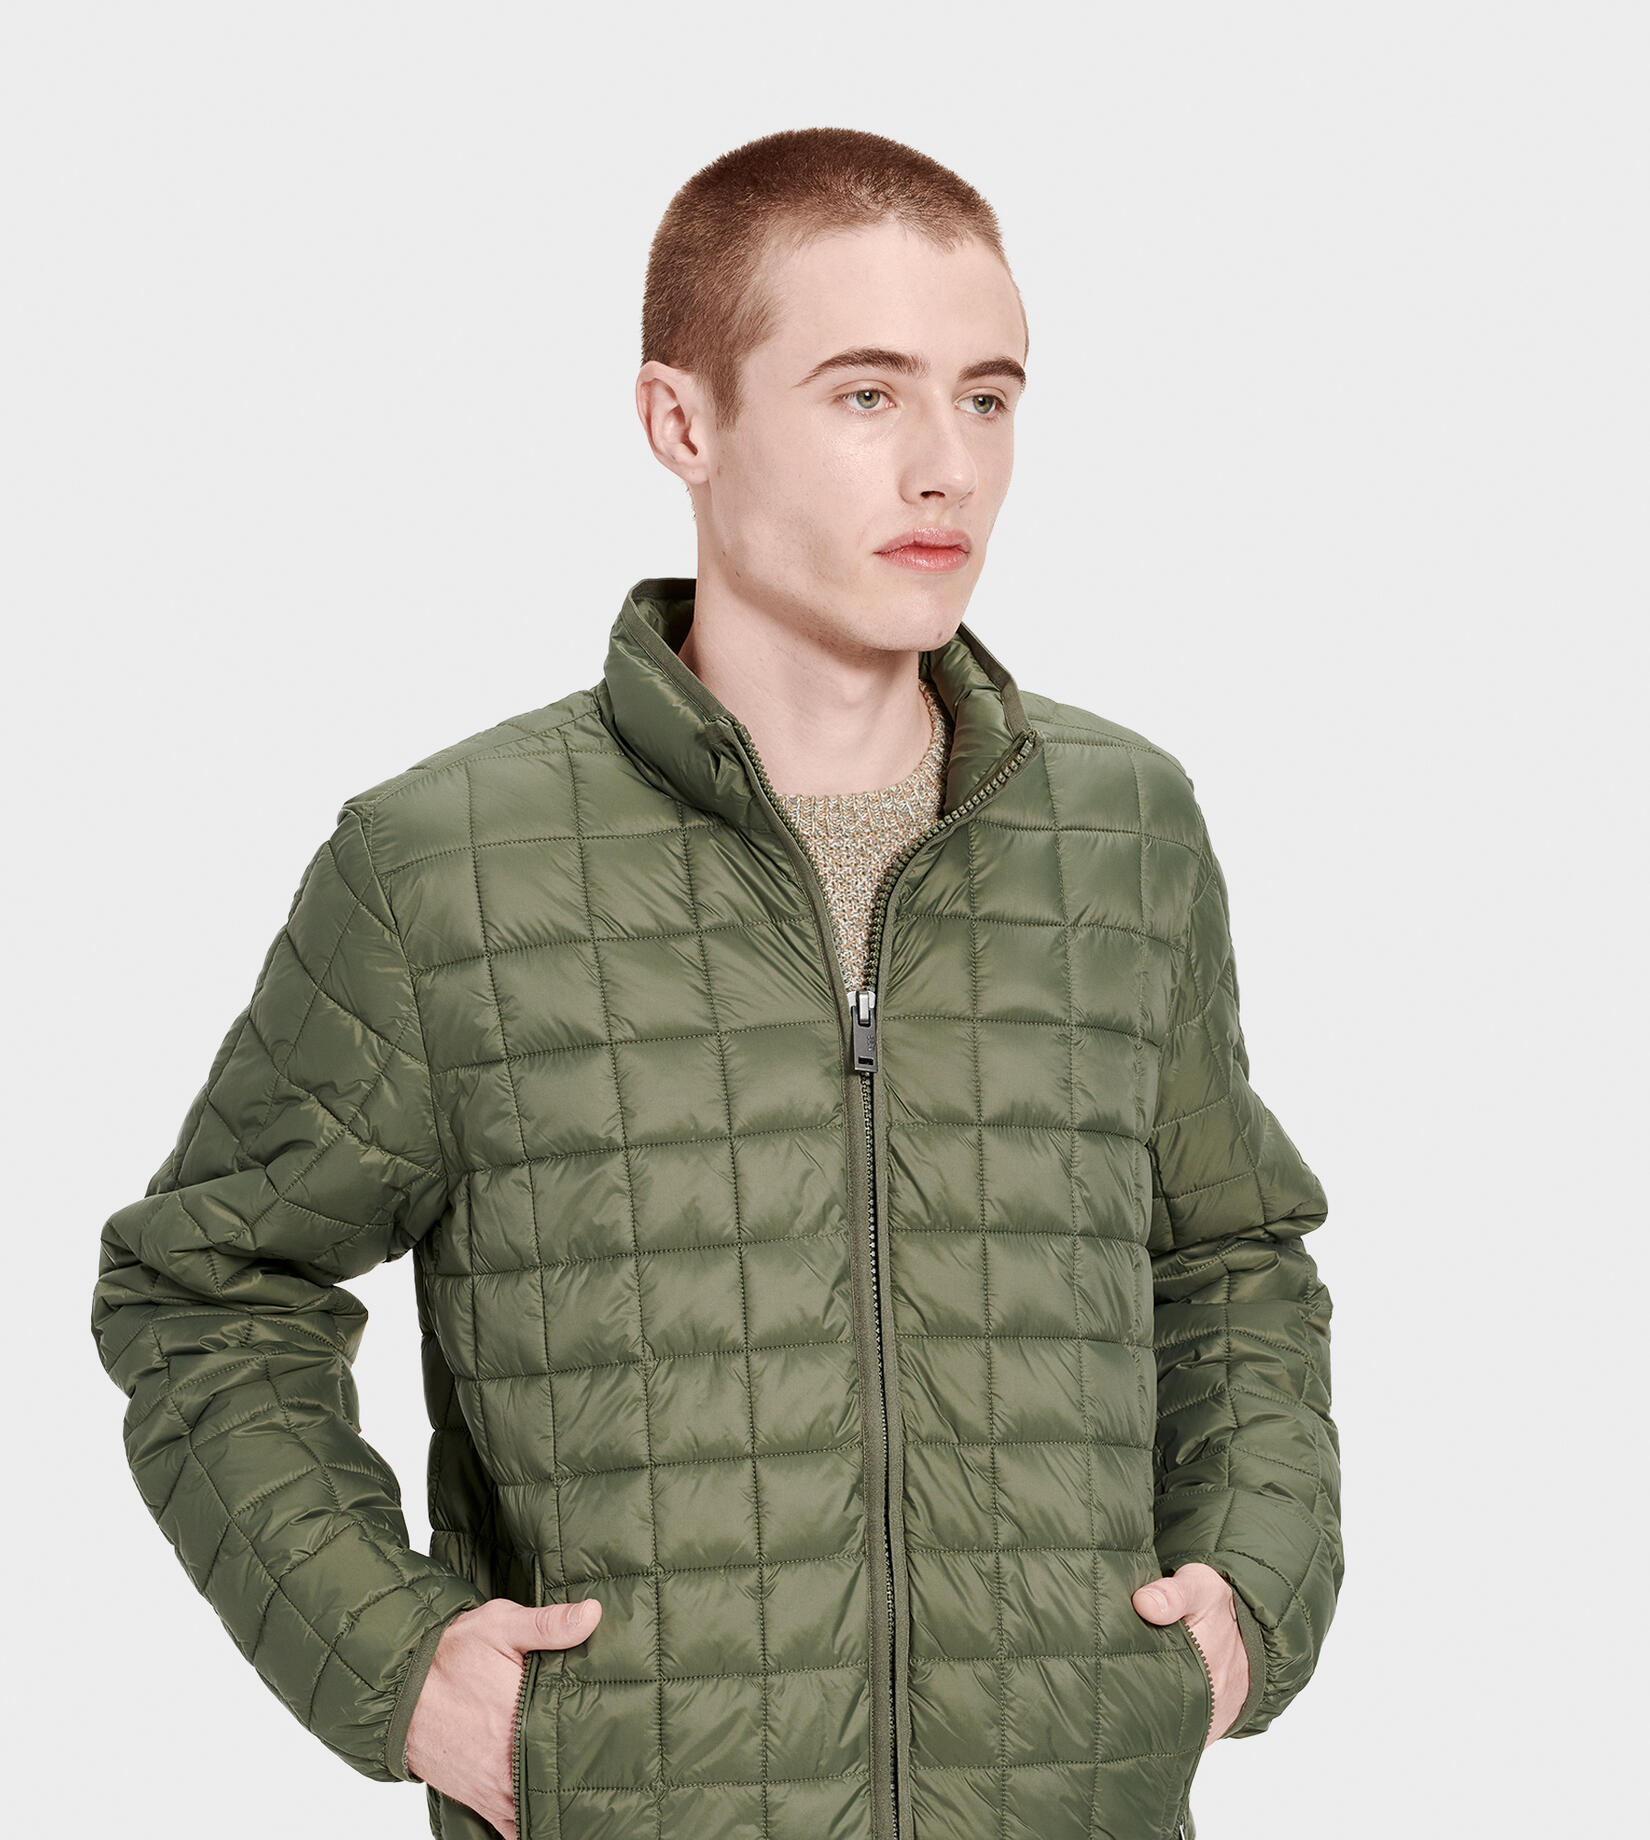 Joel Packable Quilted Vestes